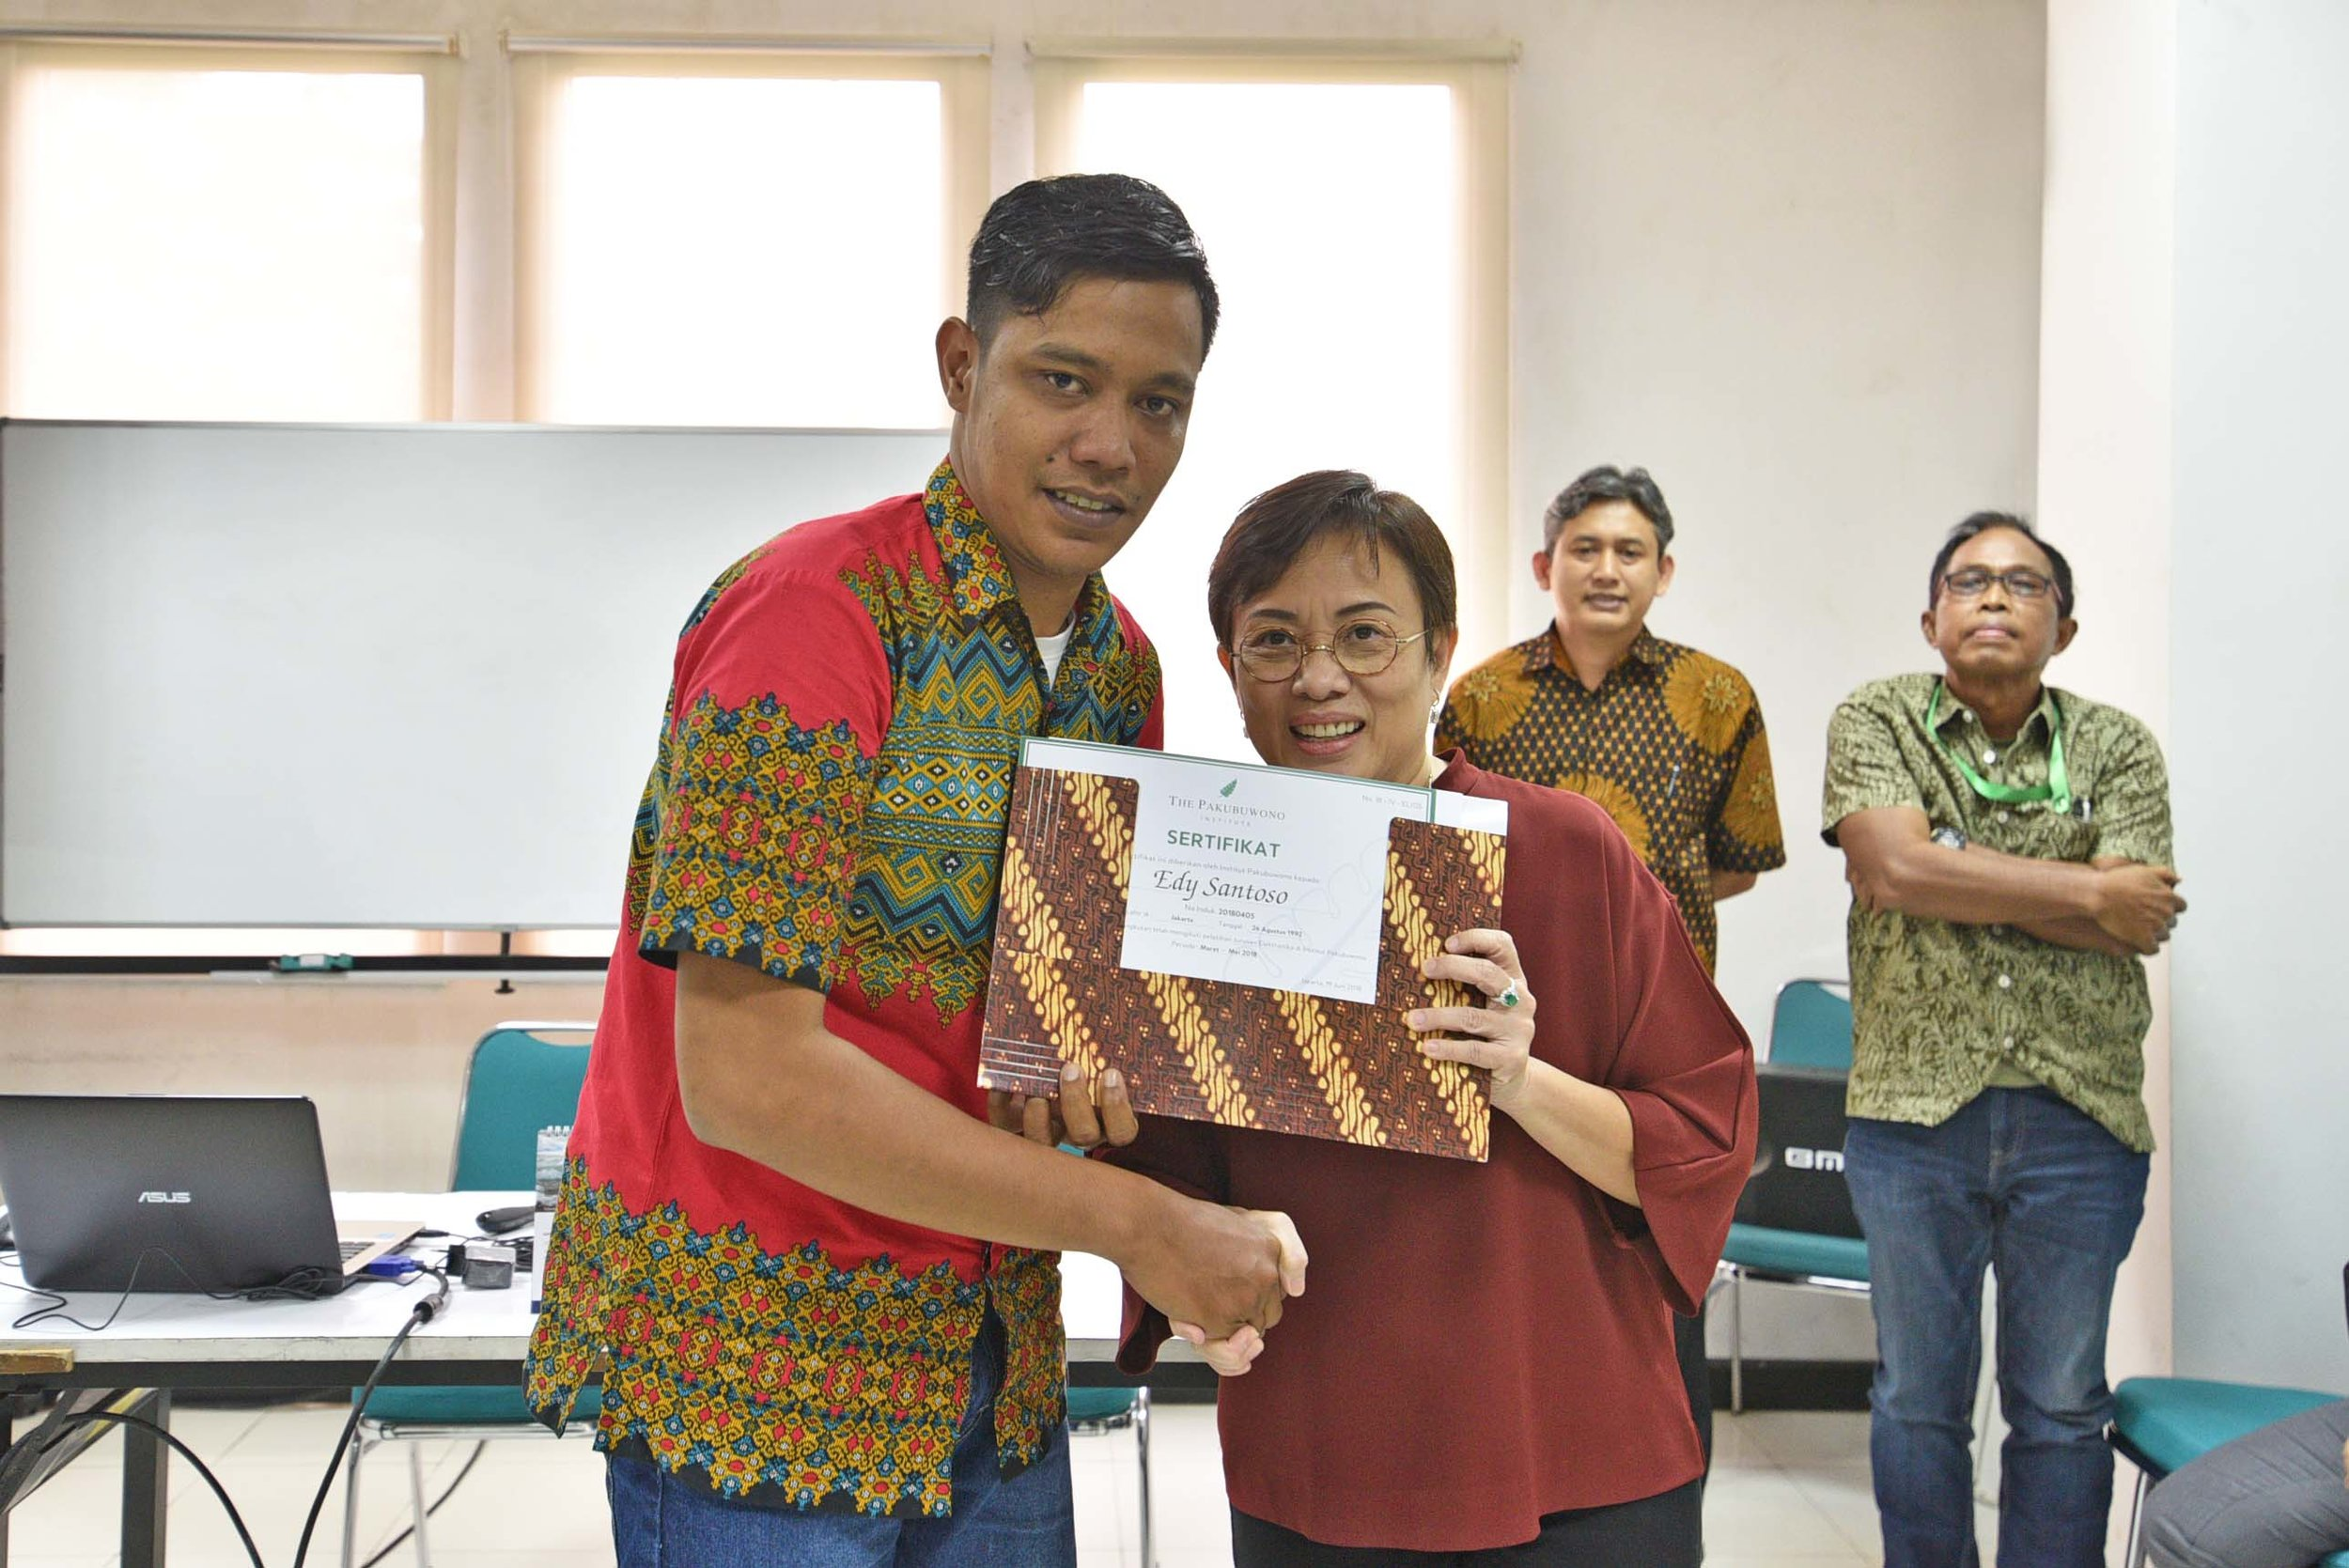 (Mrs. Anisa Himawan handed the certificate to one of the Top Ten graduate with the highest grades)